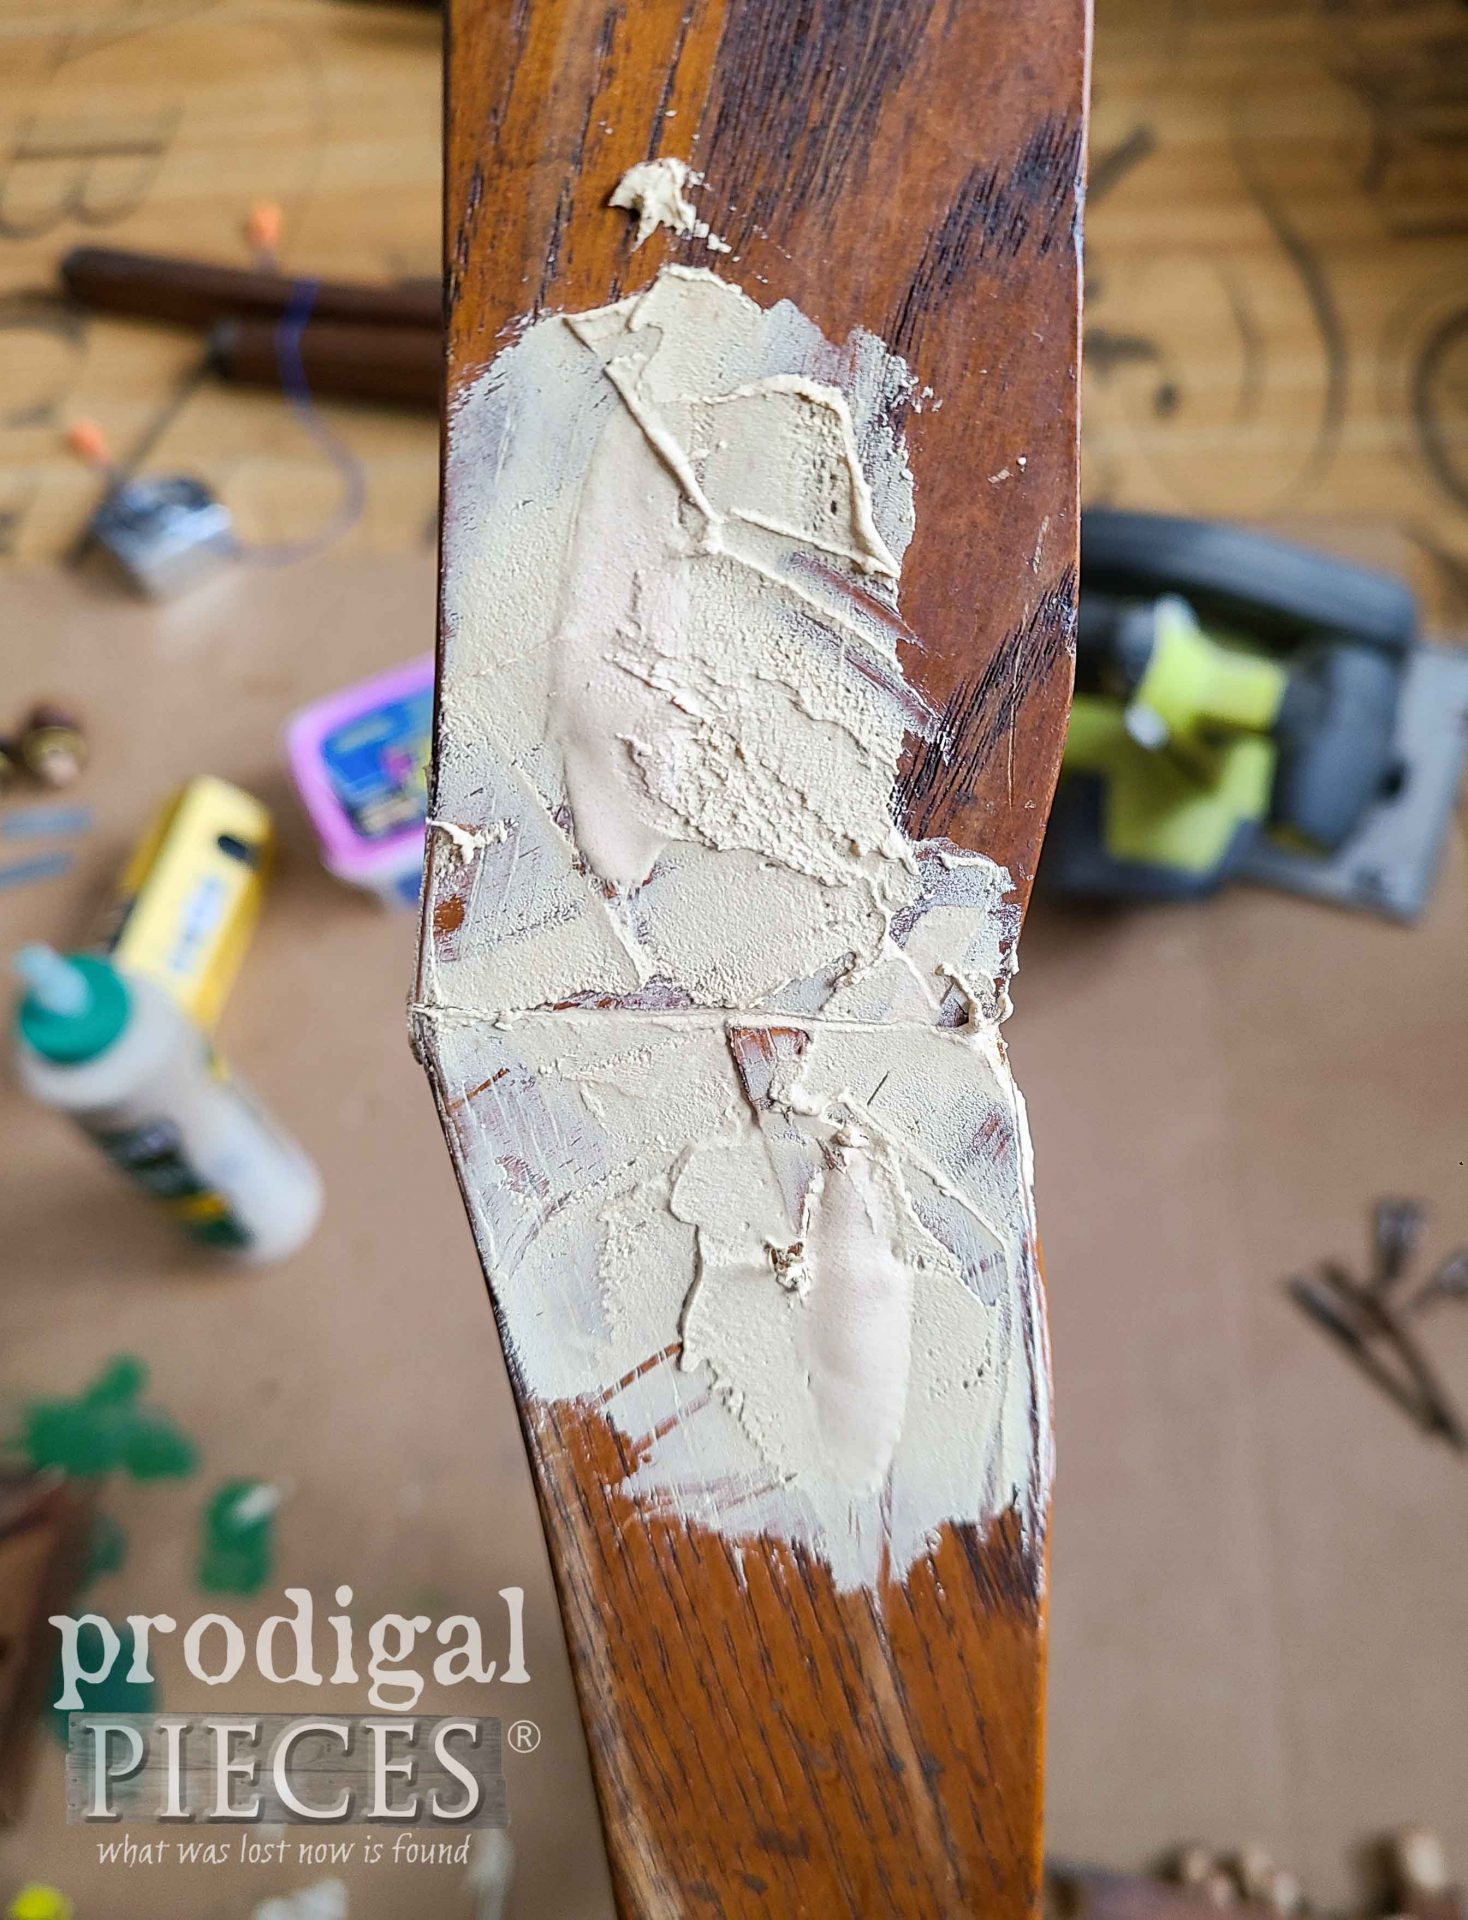 Wood Filler in Pocket Joint | prodigalpieces.com #prodigalpieces